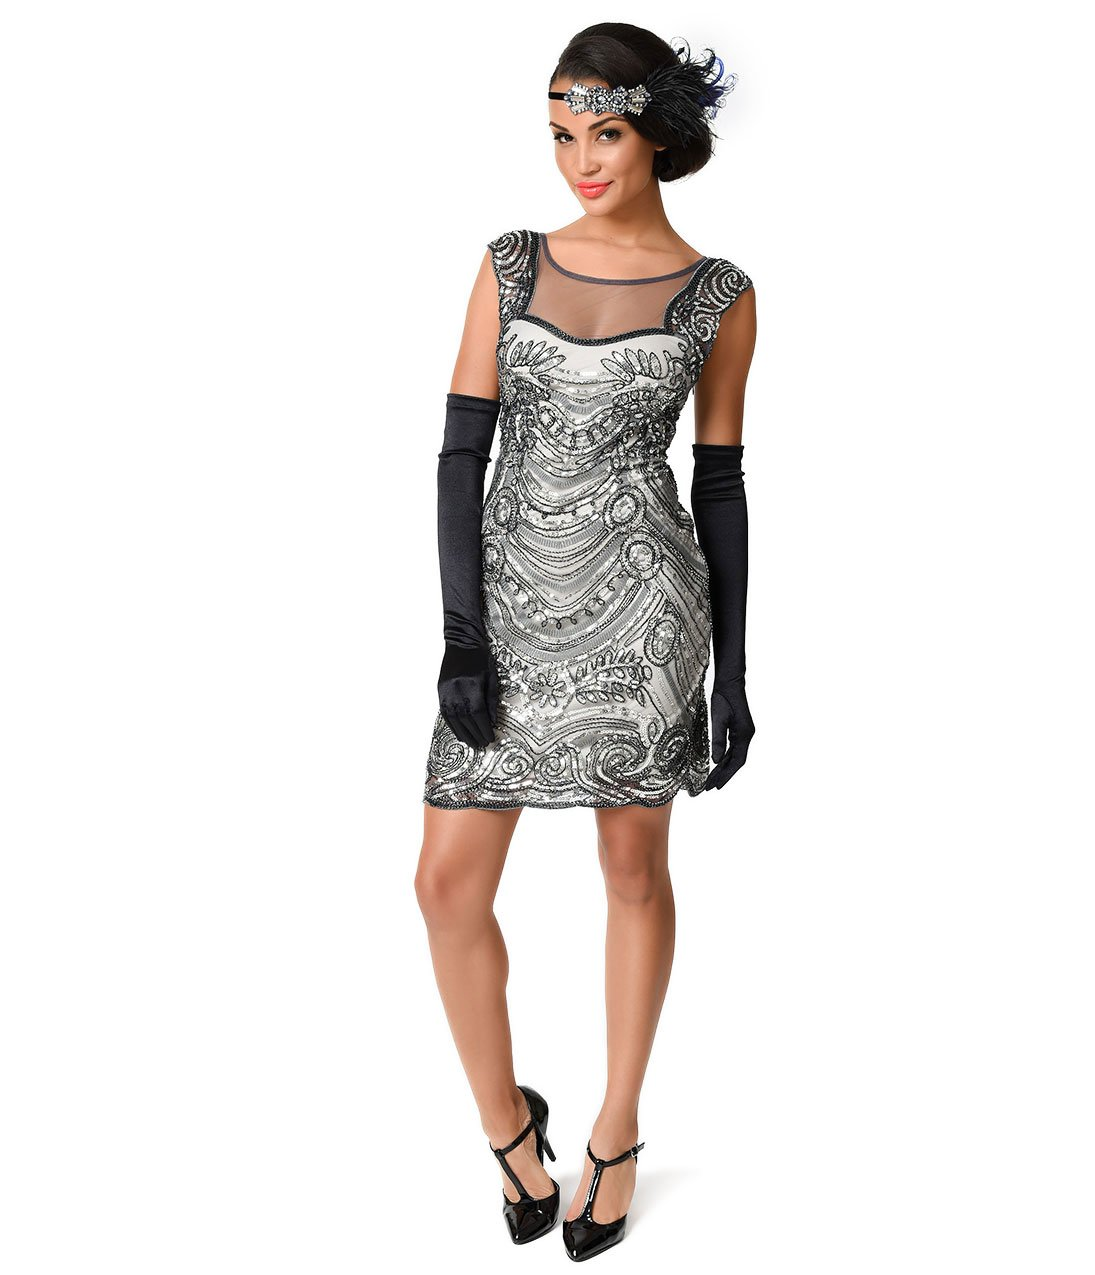 Unique Vintage 1920s Style Grey Beaded Deco Illusion Short Flapper Dress for Homecoming 2017